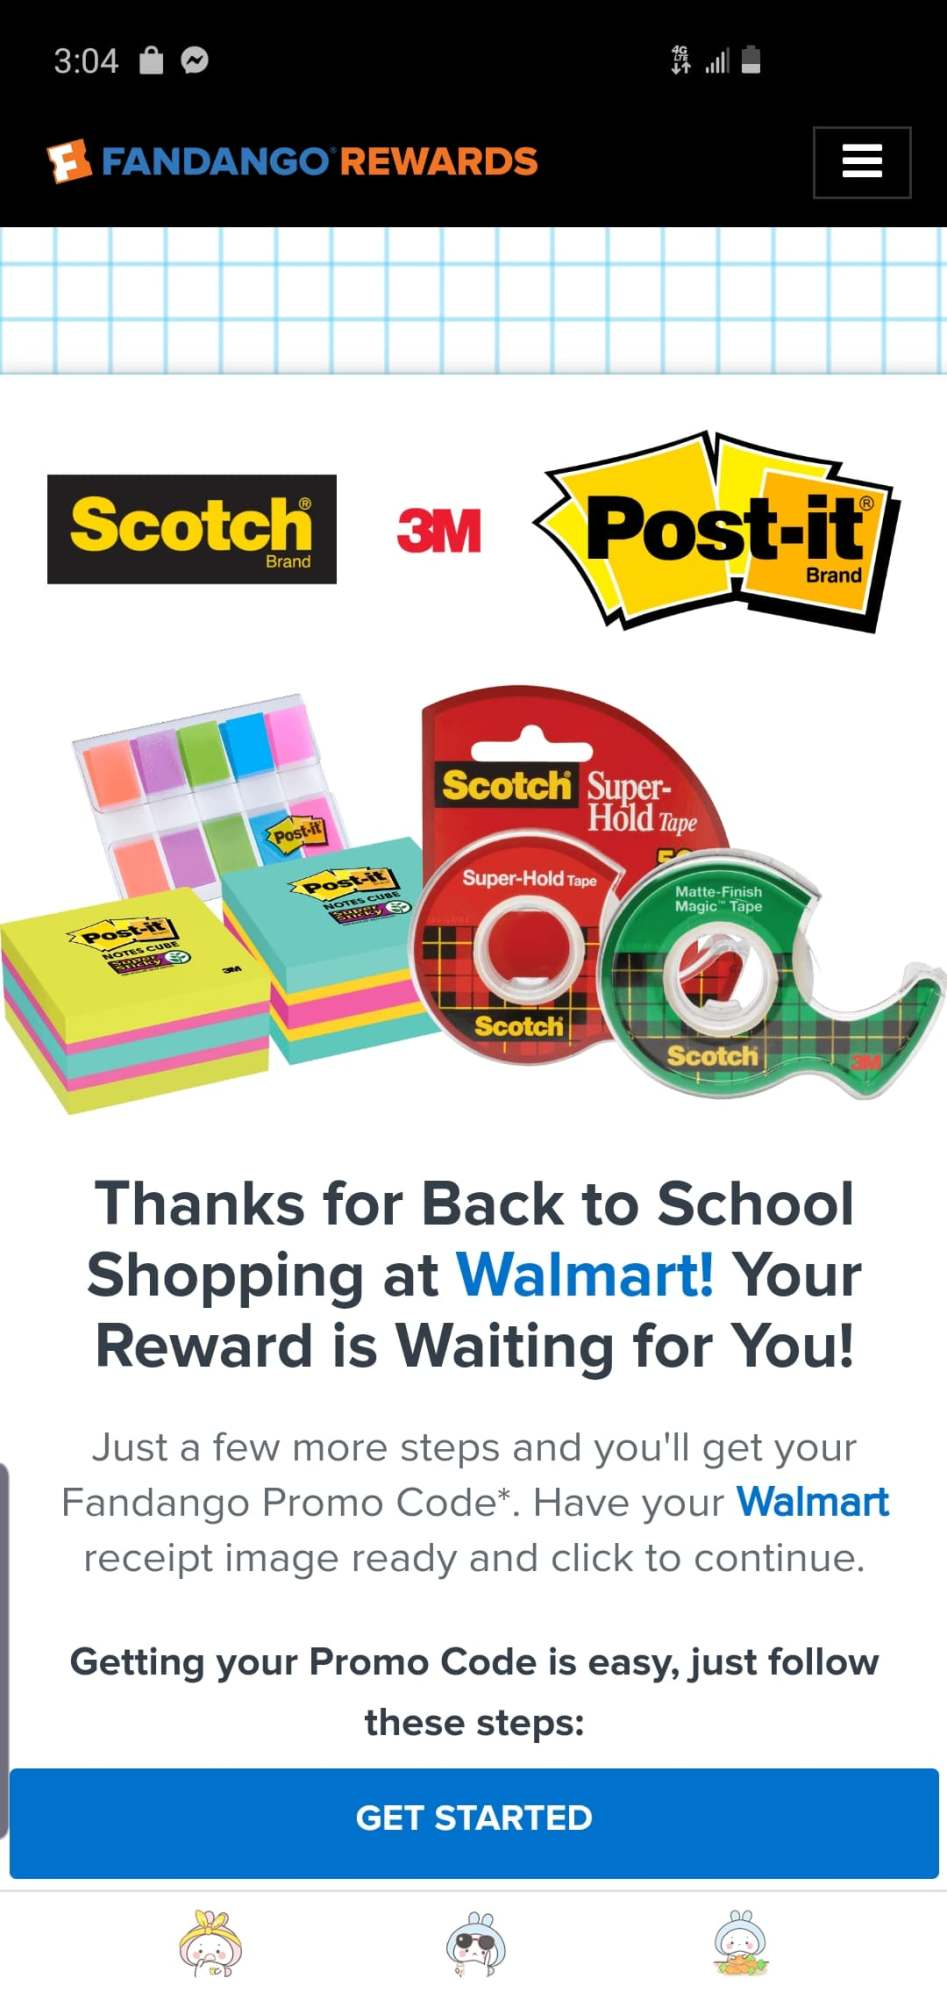 This year if you purchase $10 worth of any Post-it® and Scotch® Back to School stationery products from your local Walmart. You will receive a $10 Fandango promo code for your next movie ticket purchase.